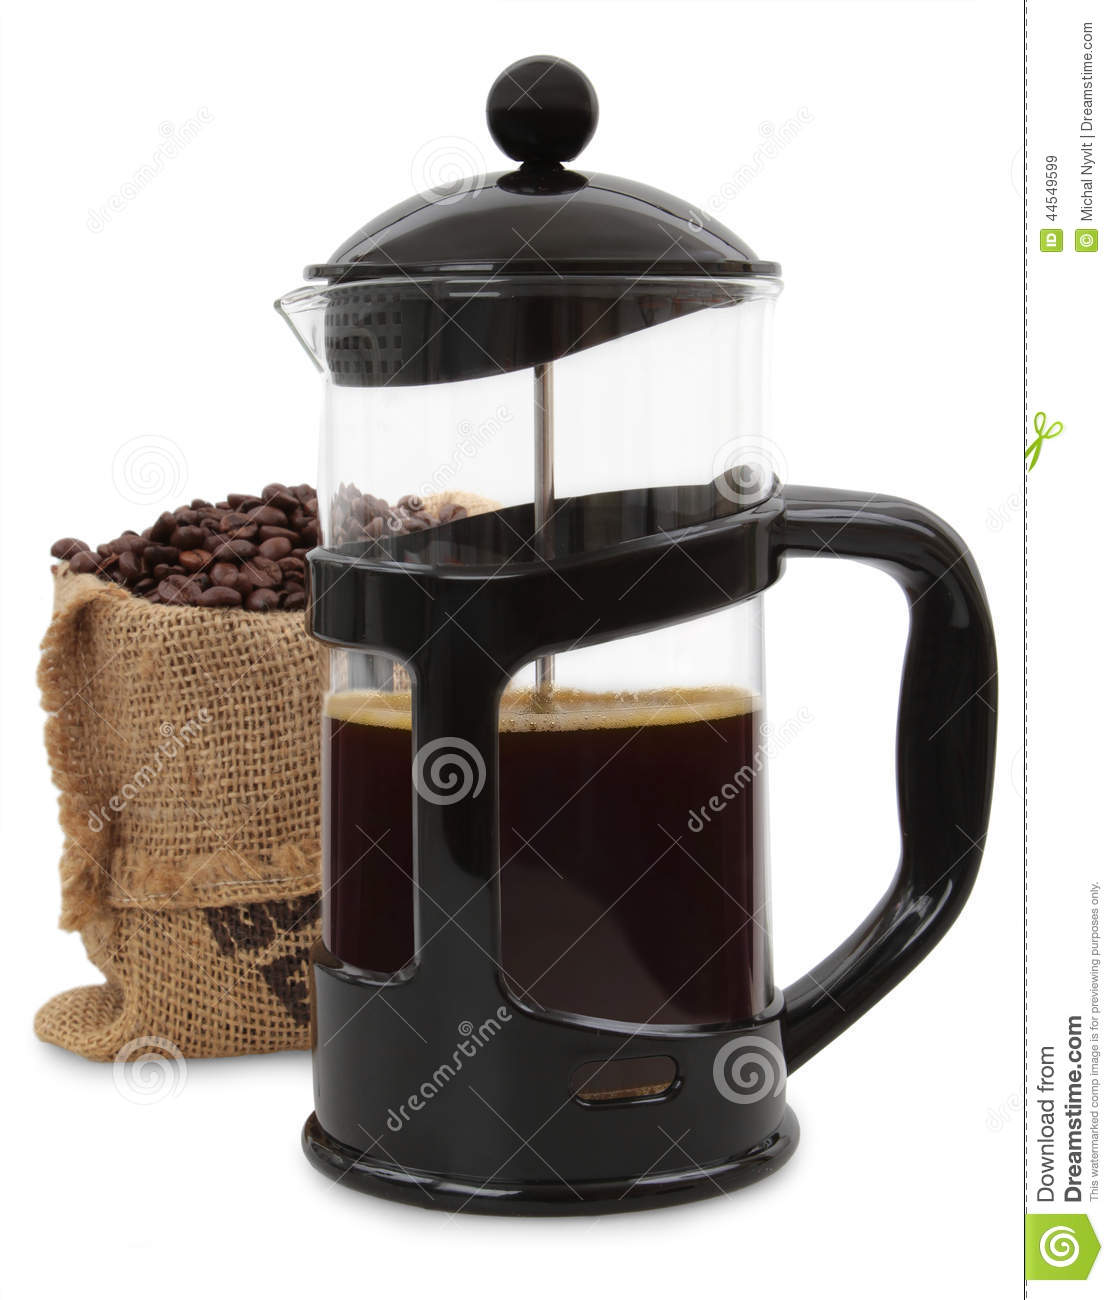 White French Press Coffee Maker : French Press Stock Photo - Image: 44549599